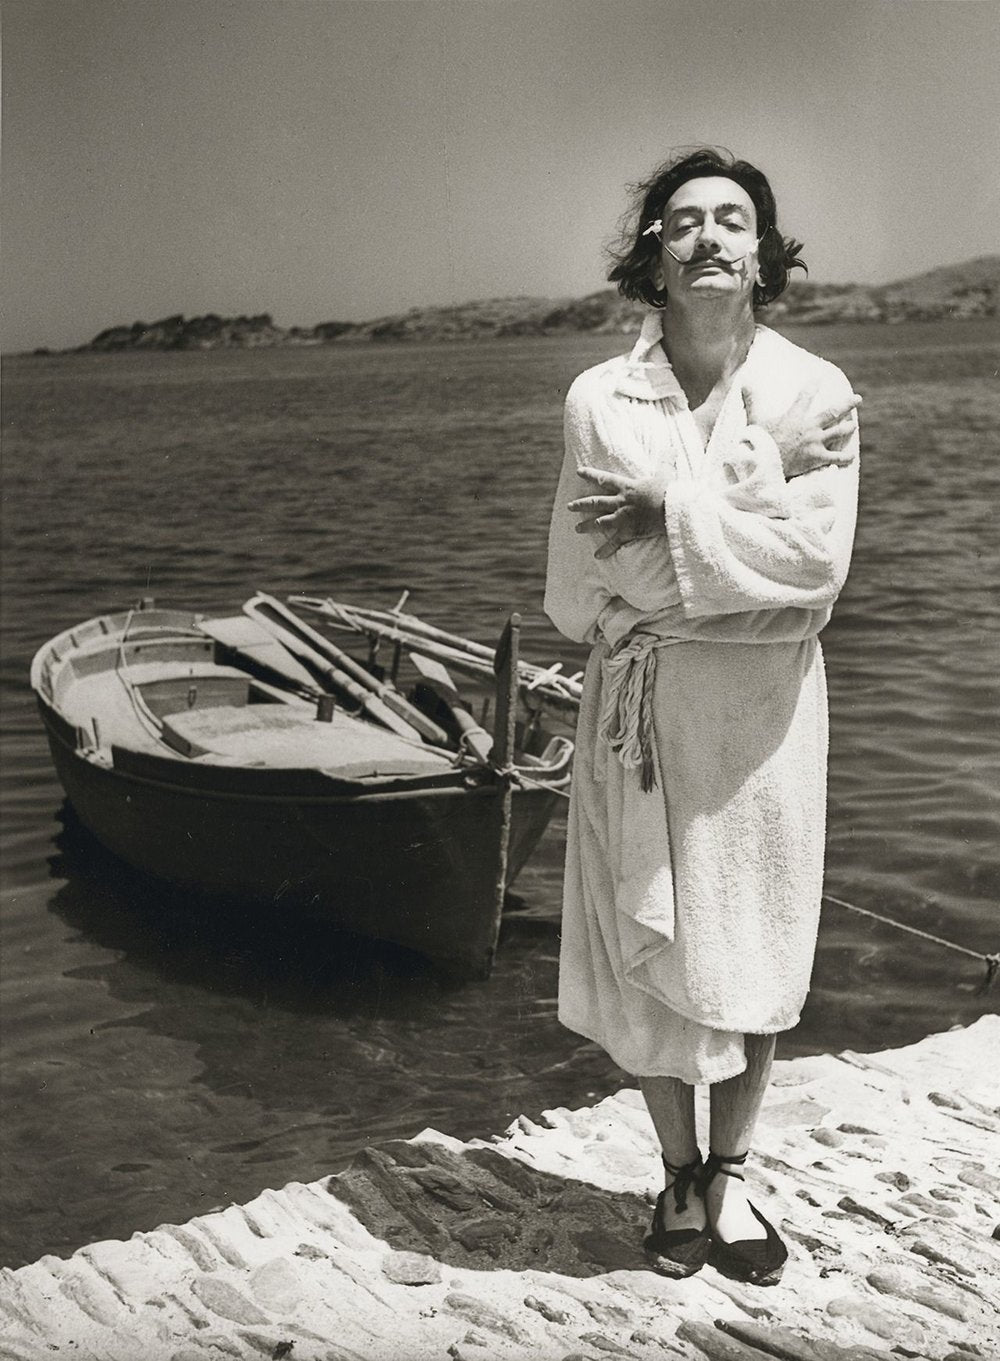 Espadrilles and Salvador Dalí | La Manual Alpargatera